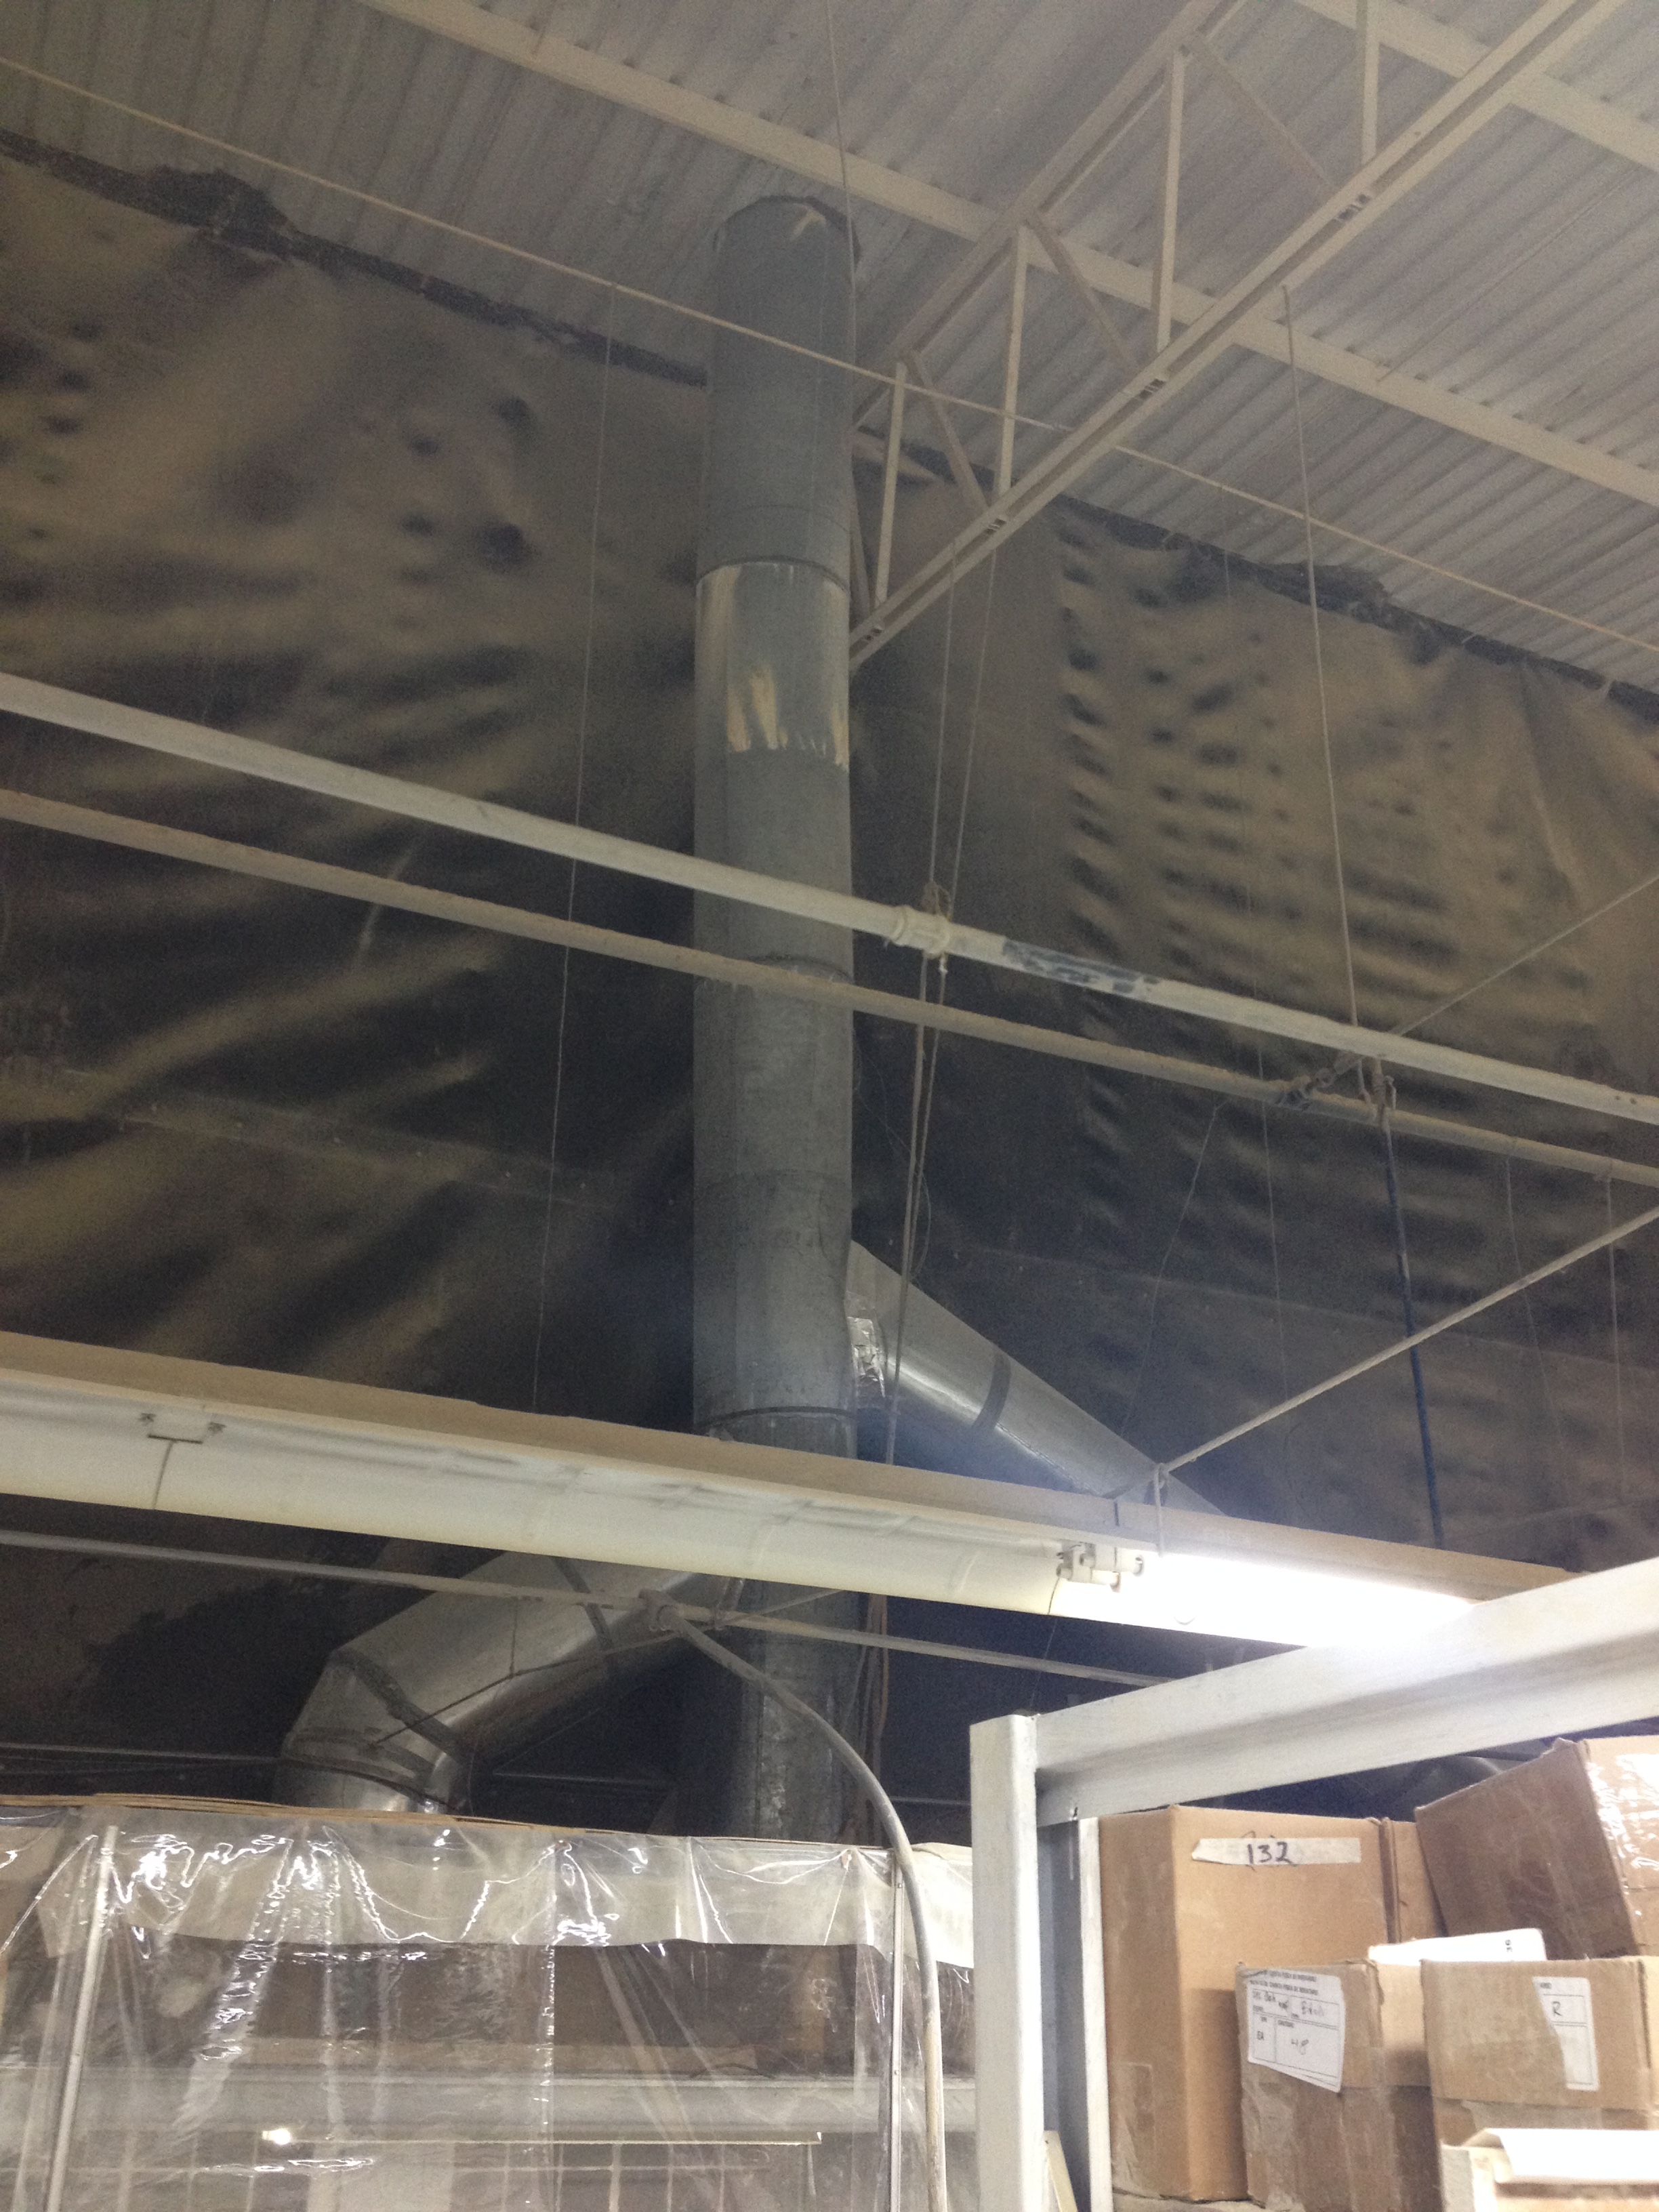 Spray booth exhaust ductwork